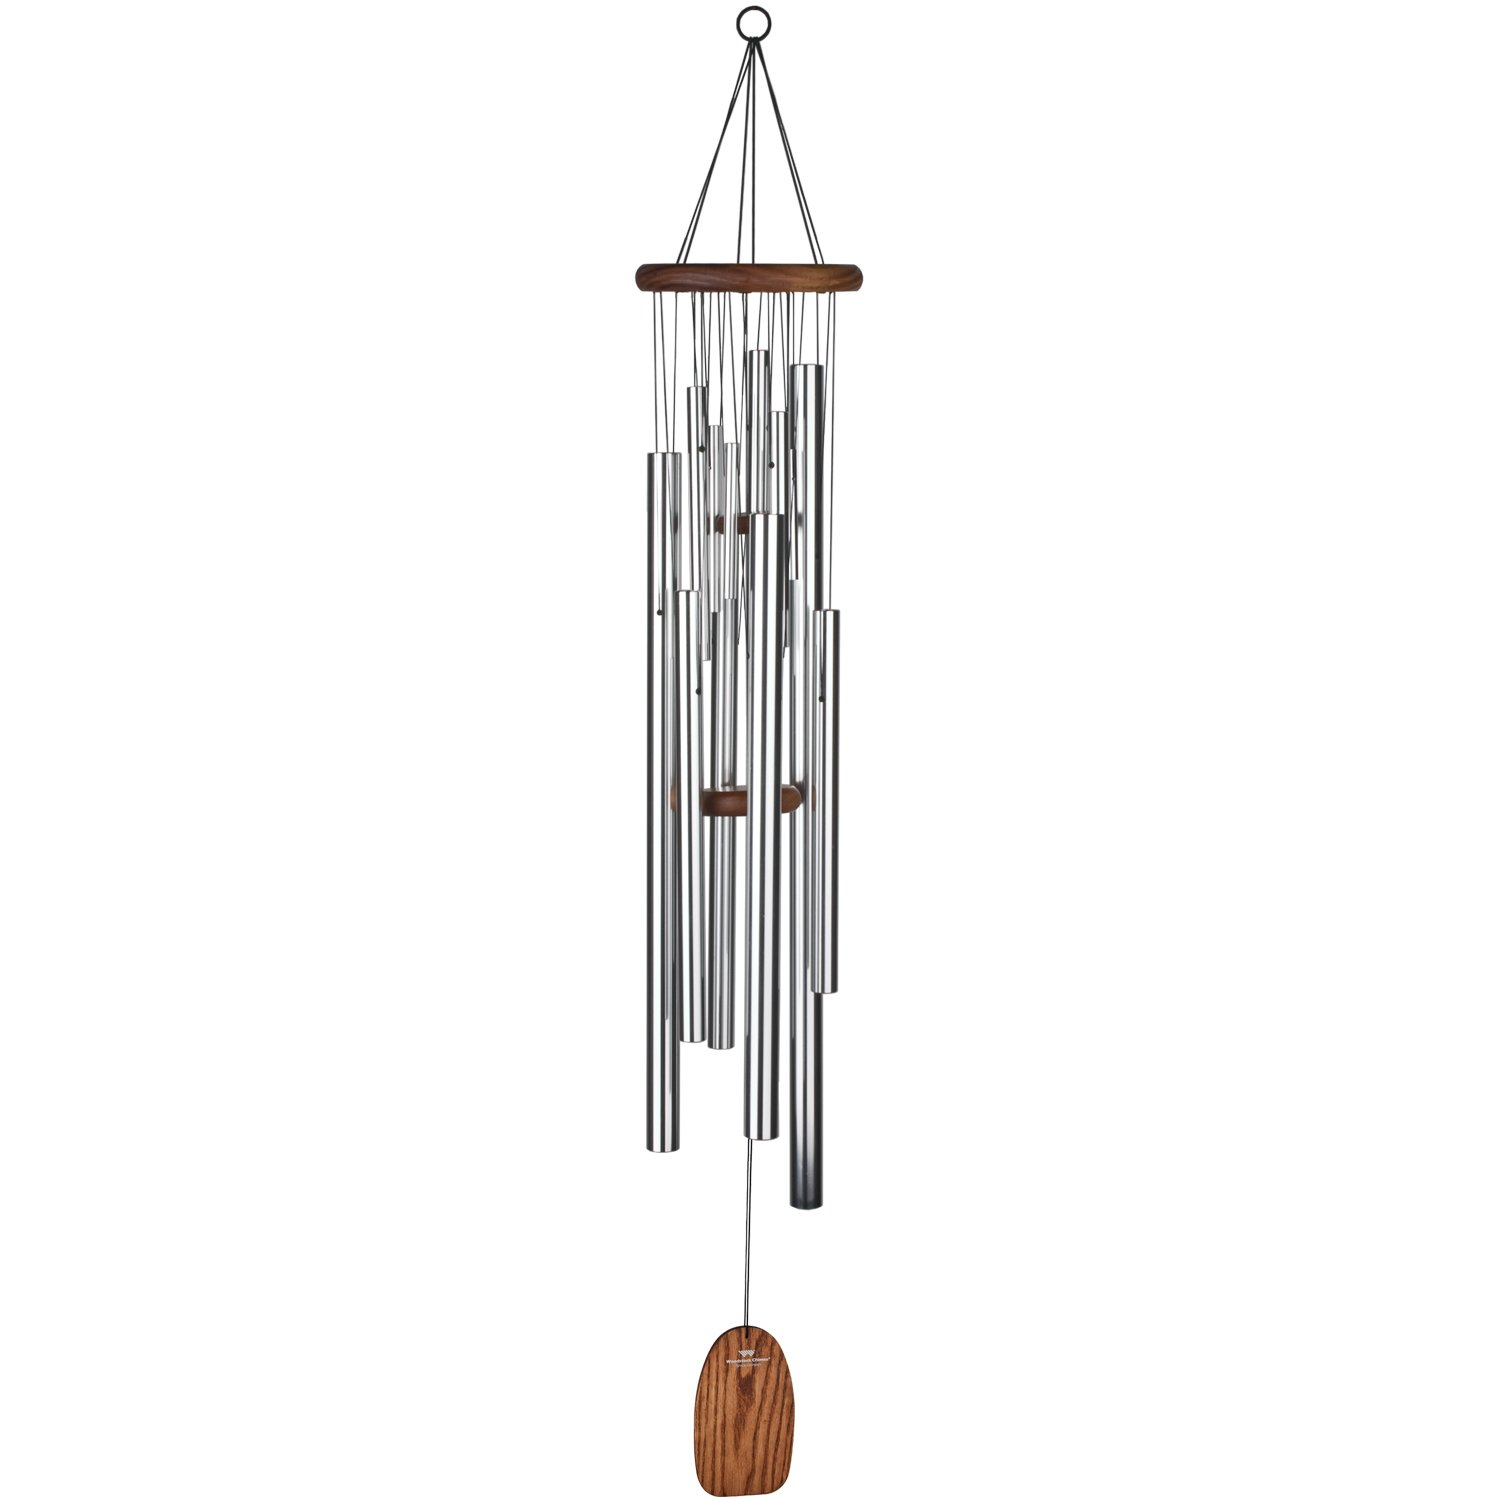 Woodstock MMSO Magical Mystery Chime, 55-Inches Long, Space Odyssey WOOY1